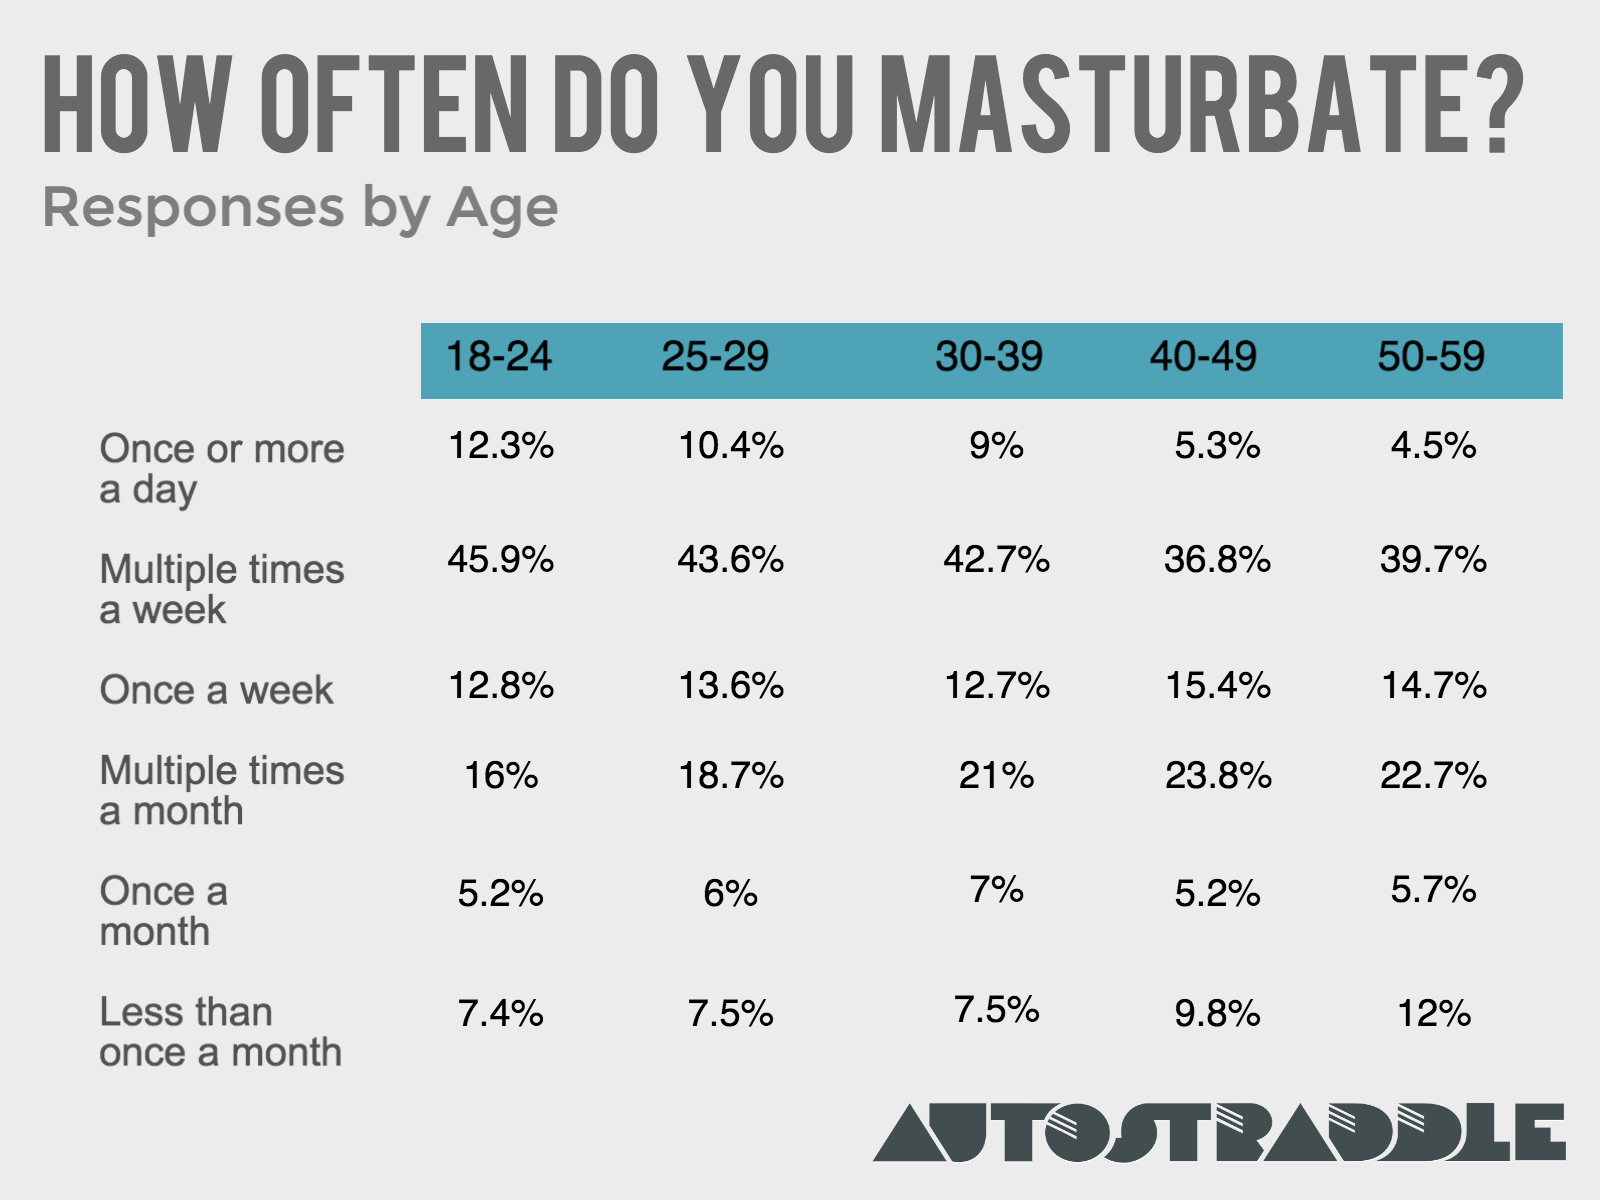 How often do females masturbate